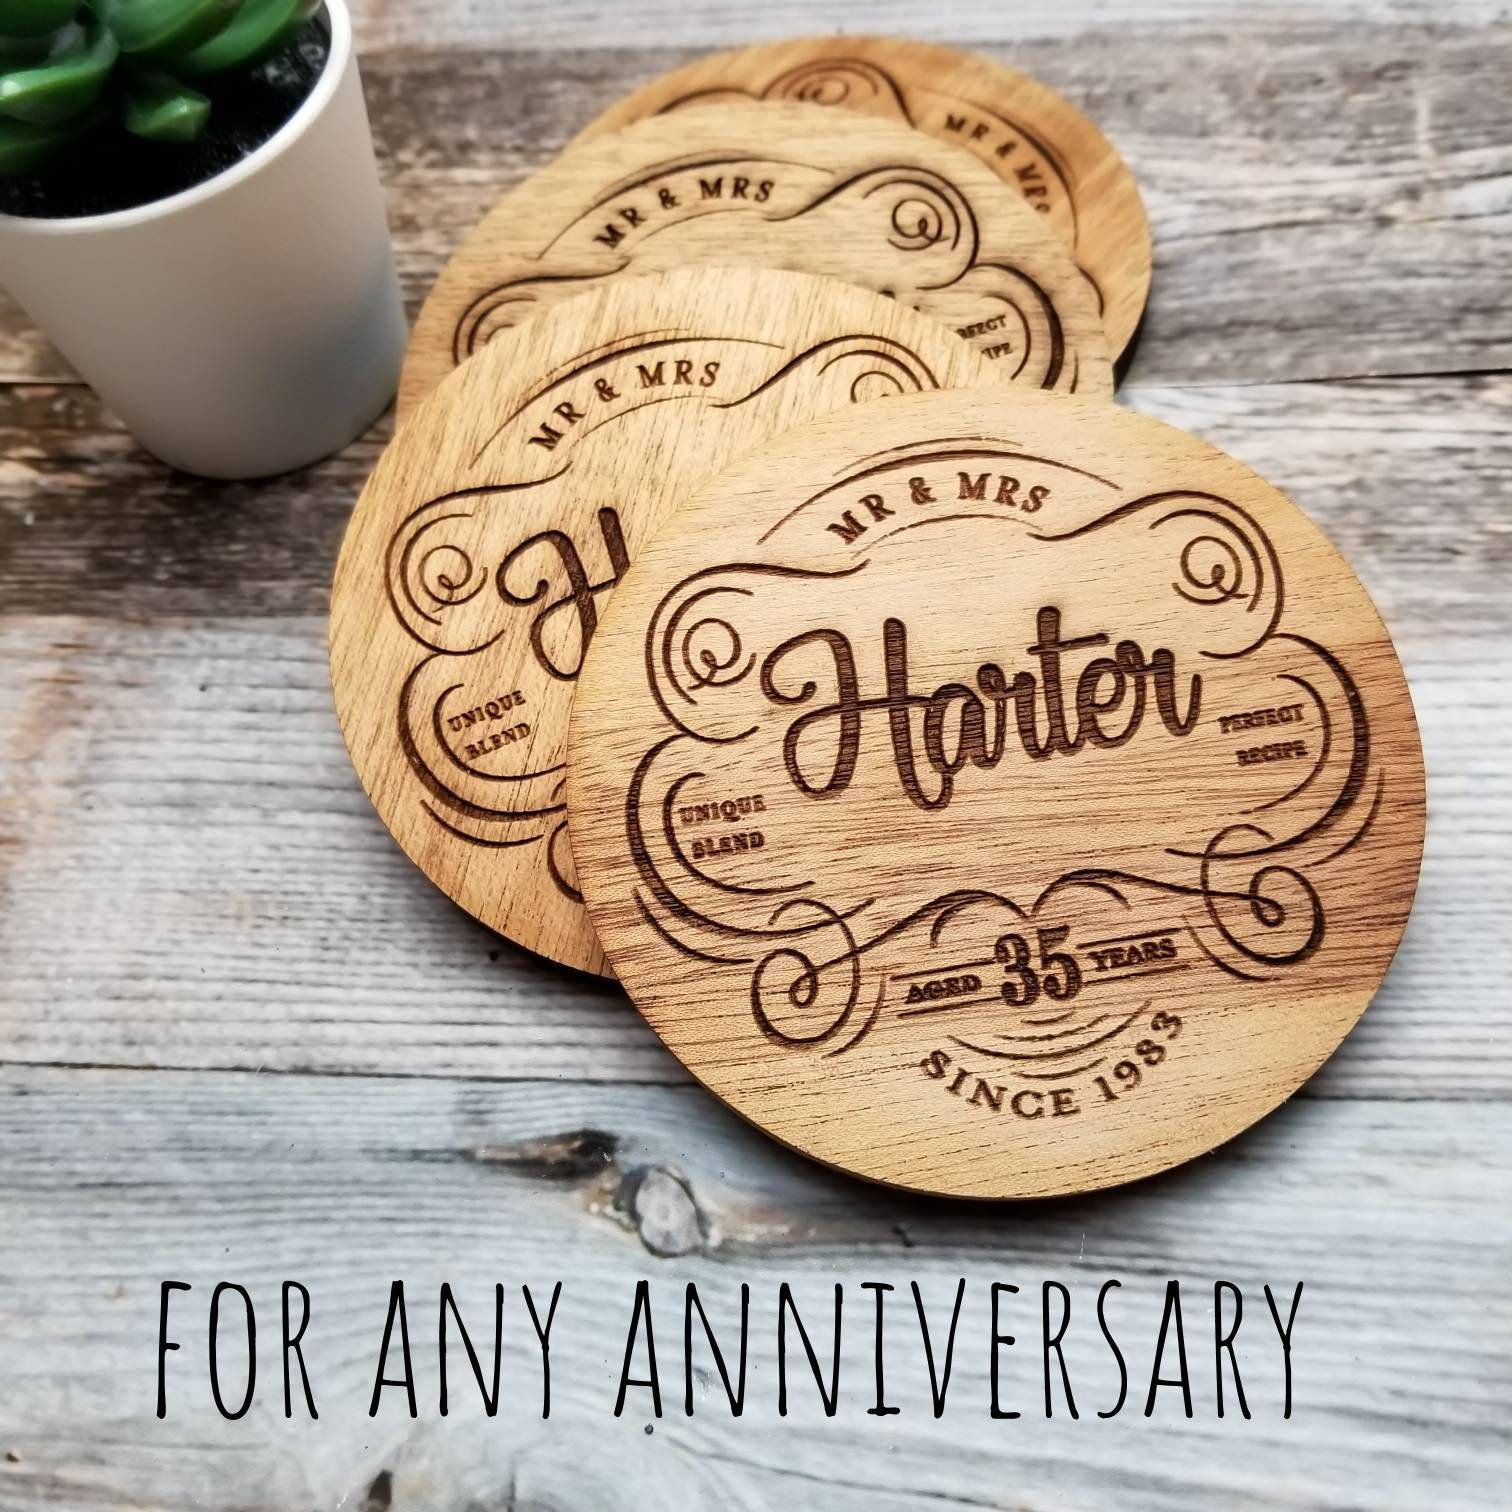 35th anniversary gift personalized coaster set 35 year